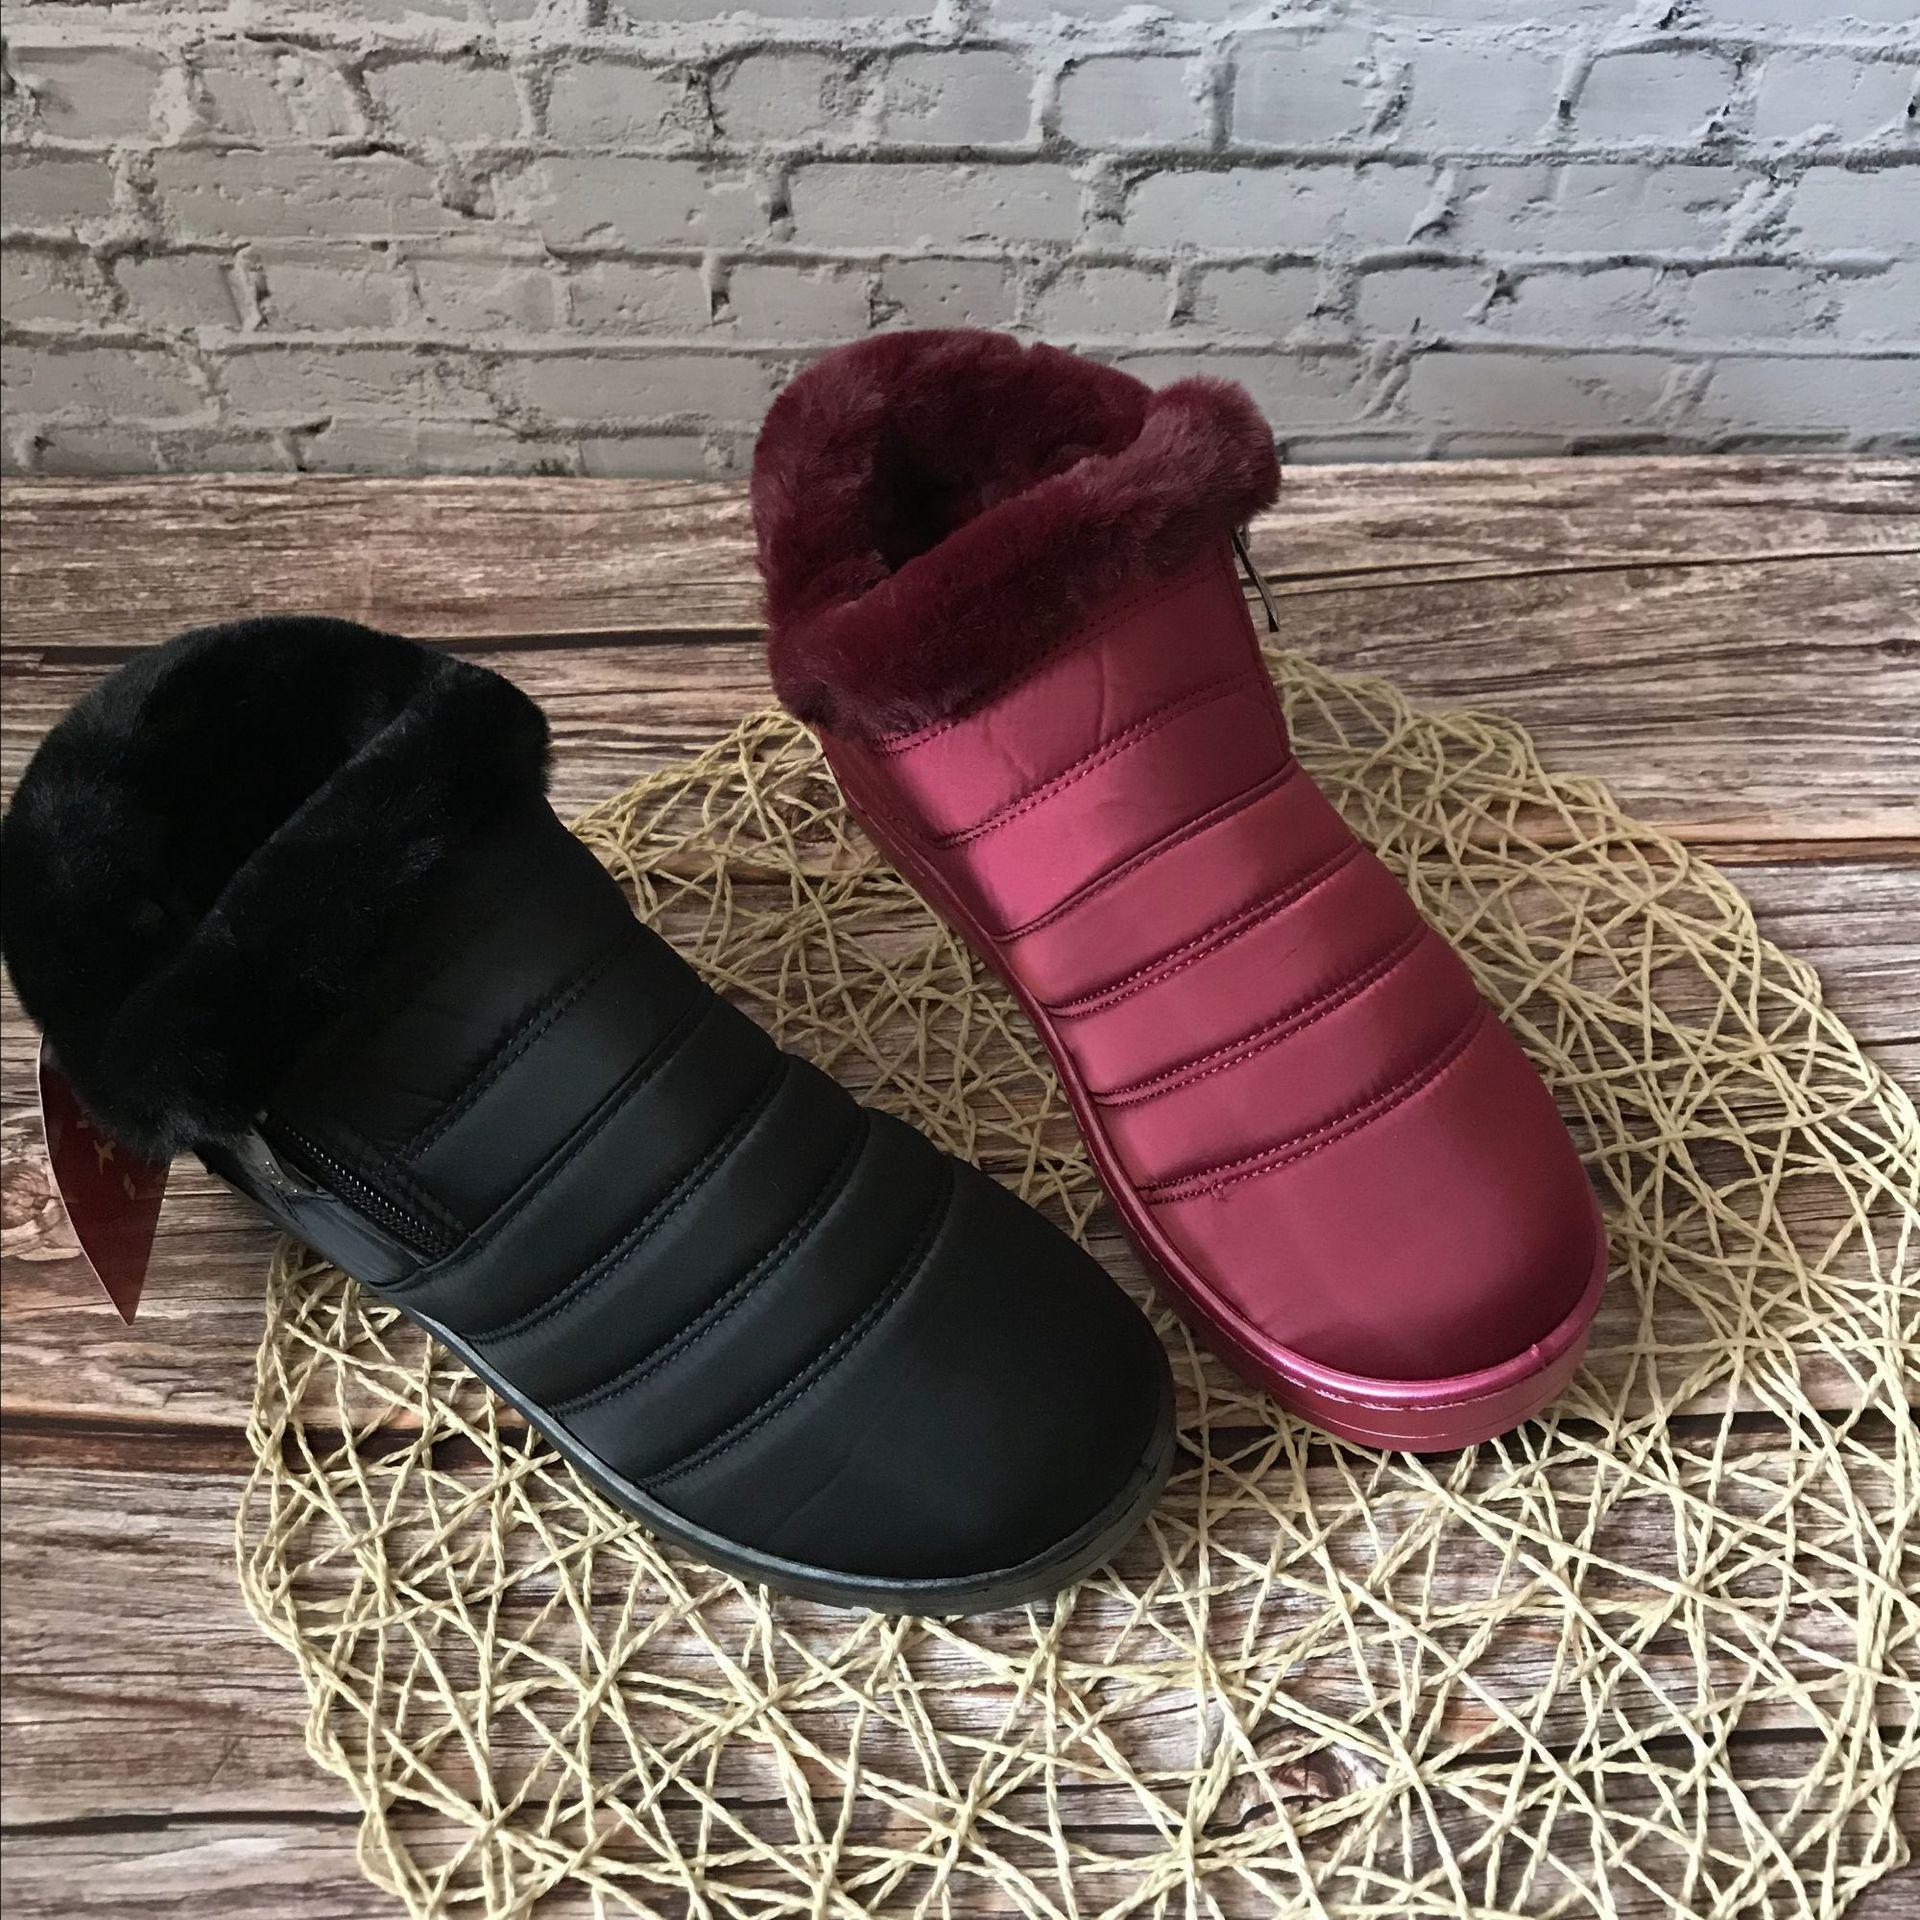 2020 Comfortable New 2020 High-quality Snow Fashion Footwear Women's Shoes Round Toe Boots Gdor